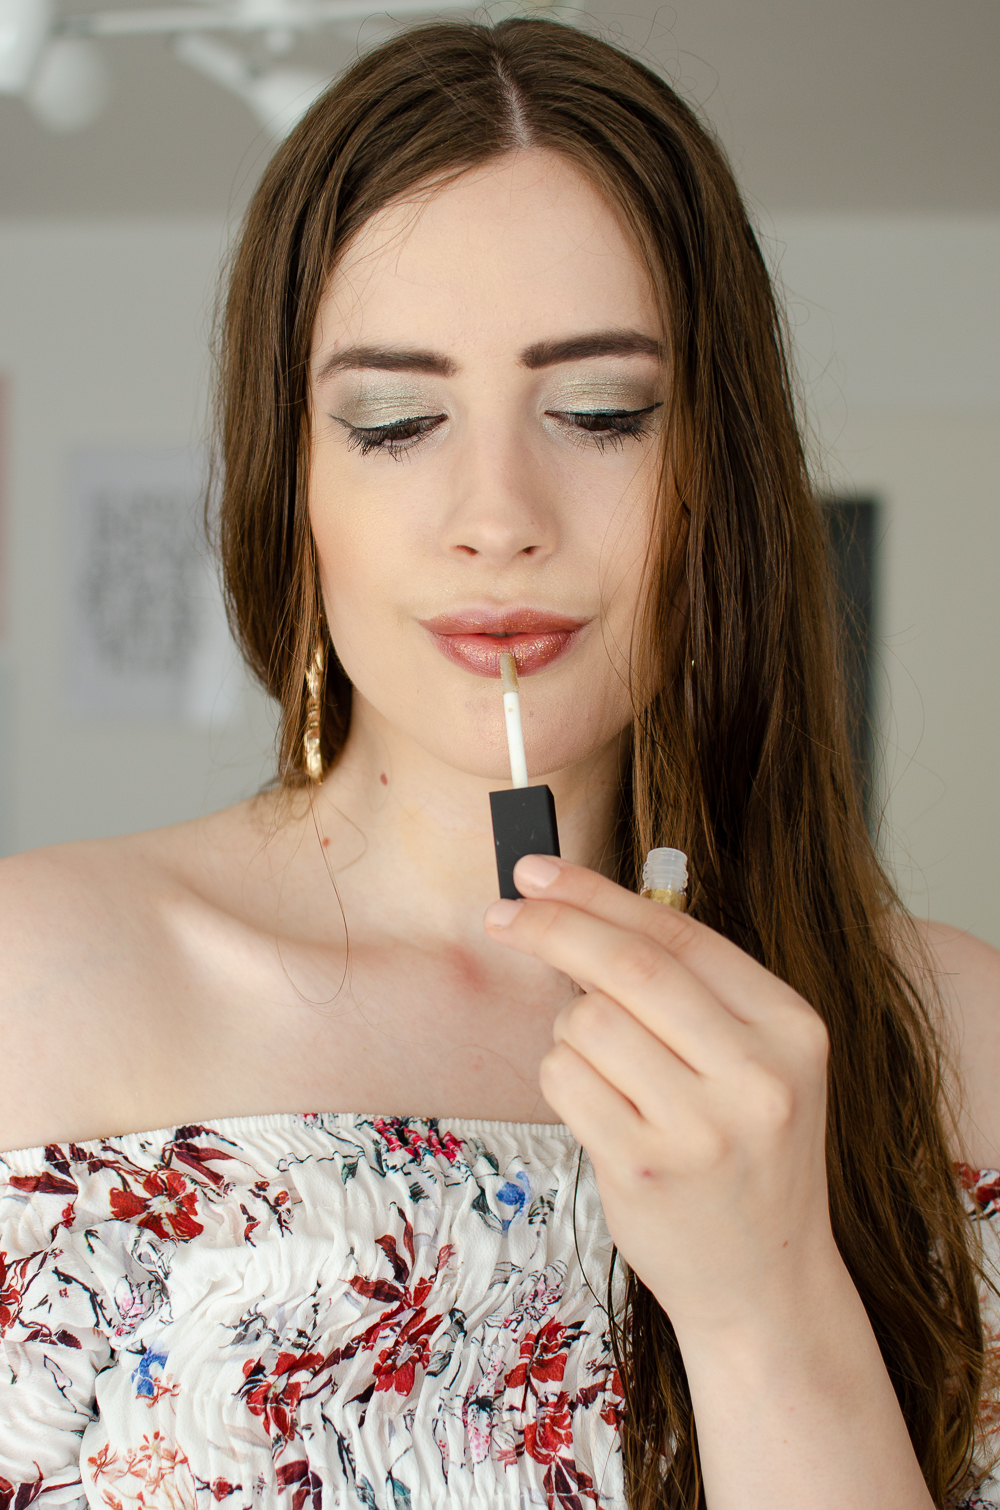 Der perfekte Sommer Glow-L'Oréal Crushed Foil Limited Edition-Beautyblog-Sommer Make-Up-andysparkles